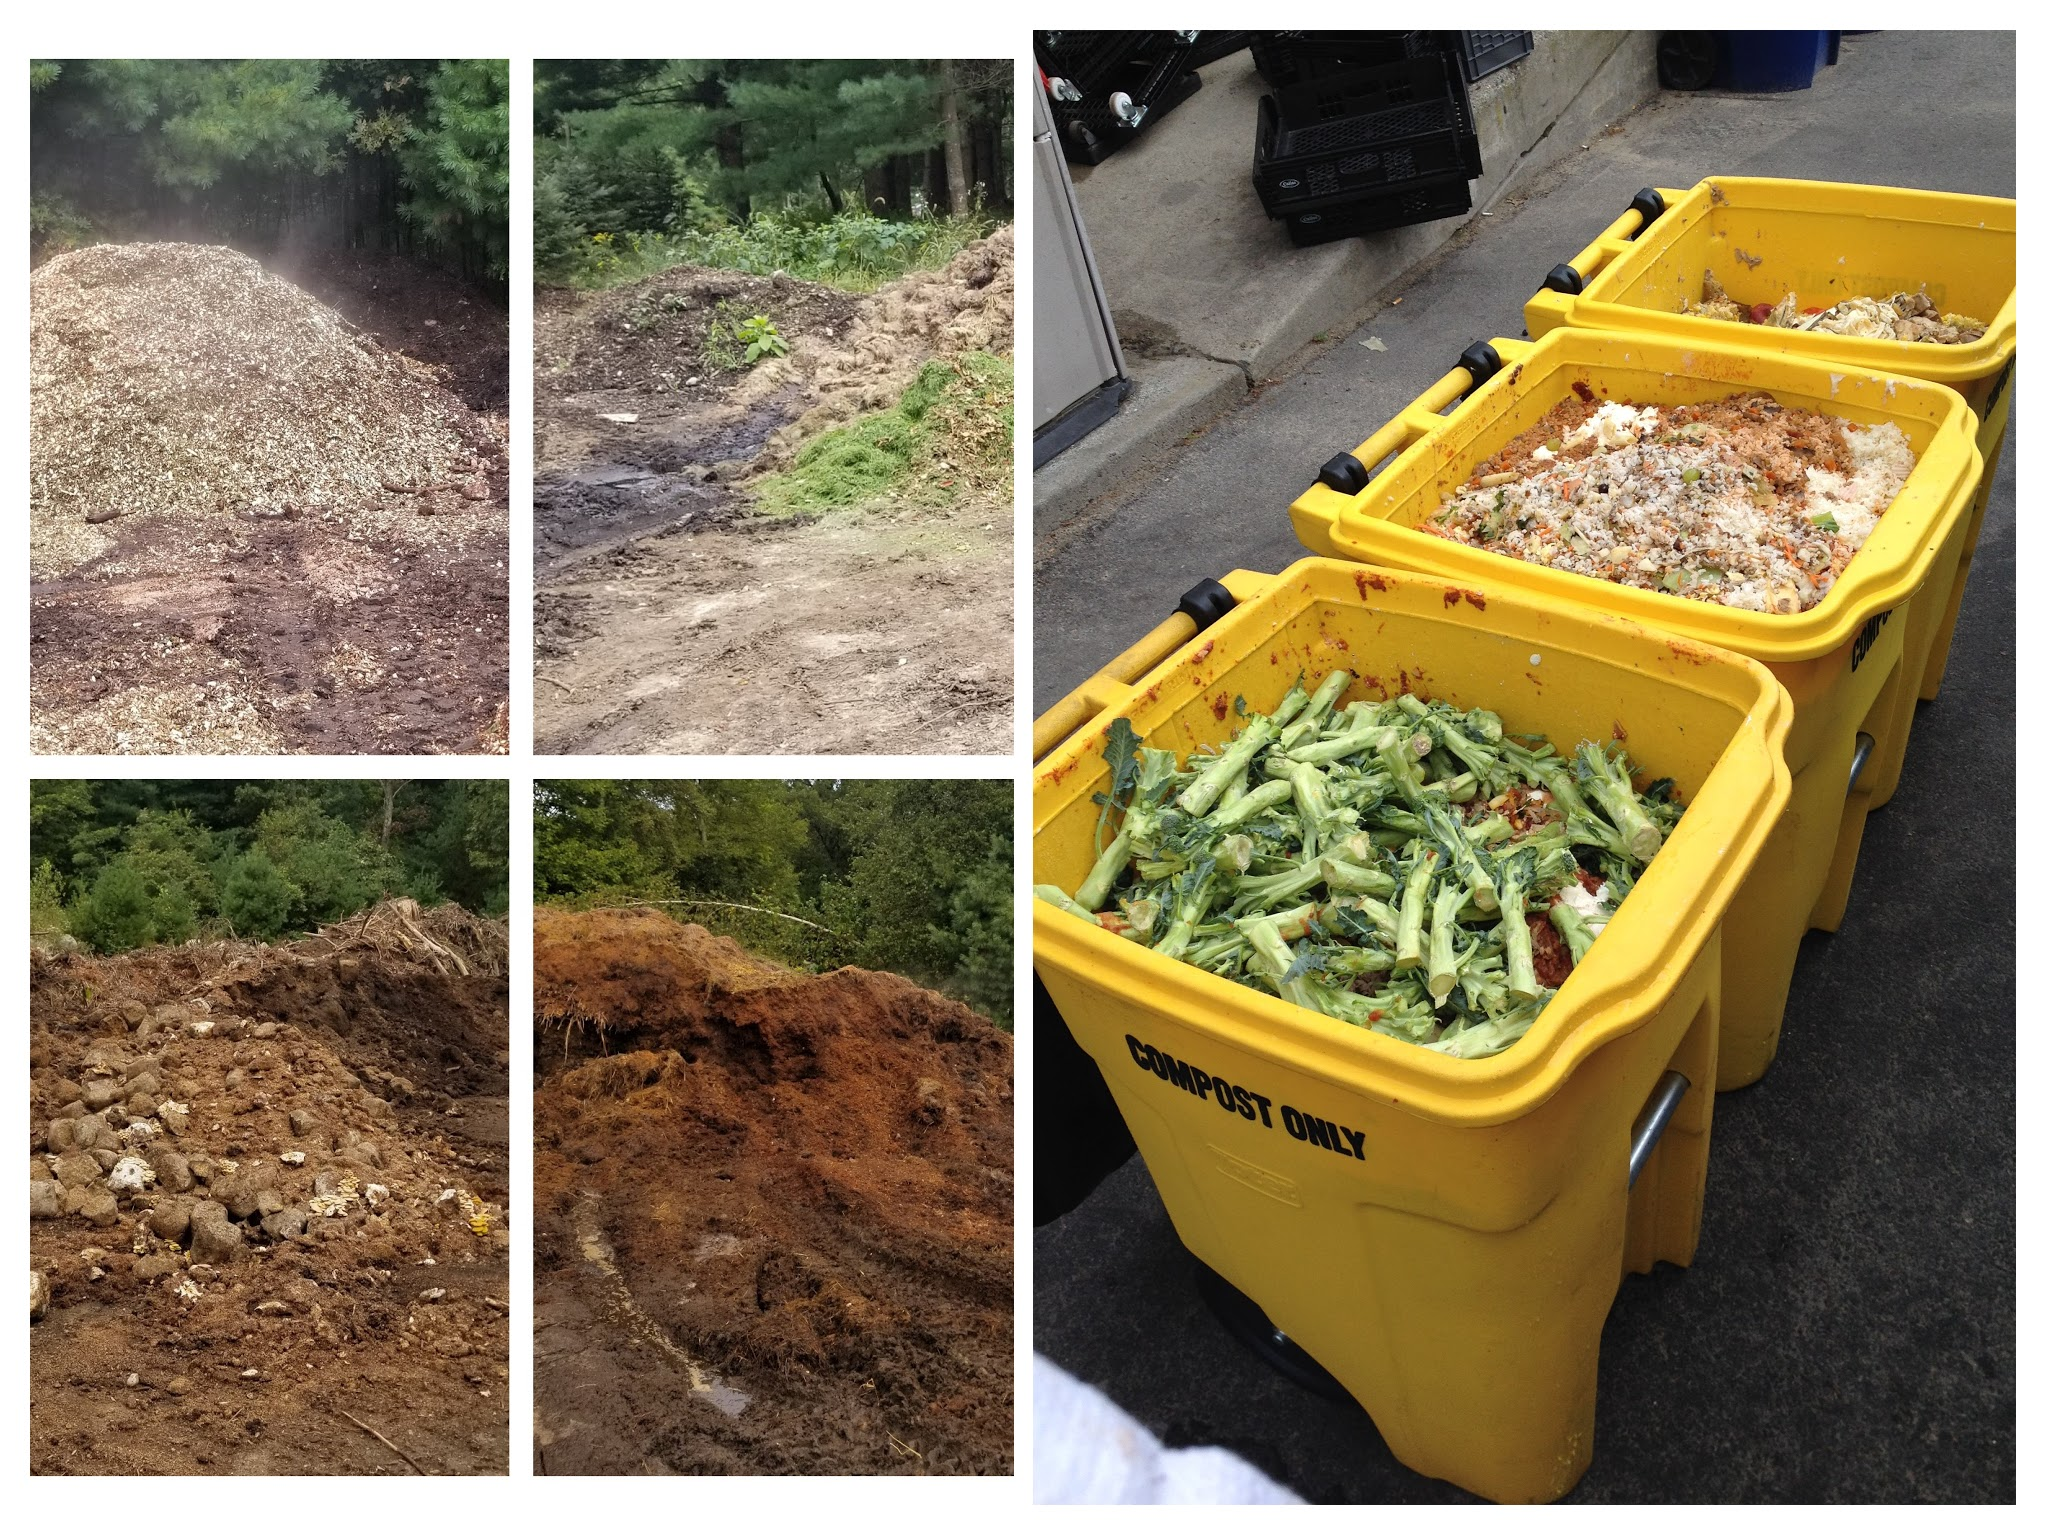 Different feedstocks for our compost recipe- wood chips, grass clippings, manure, mushroom compost and food scraps.